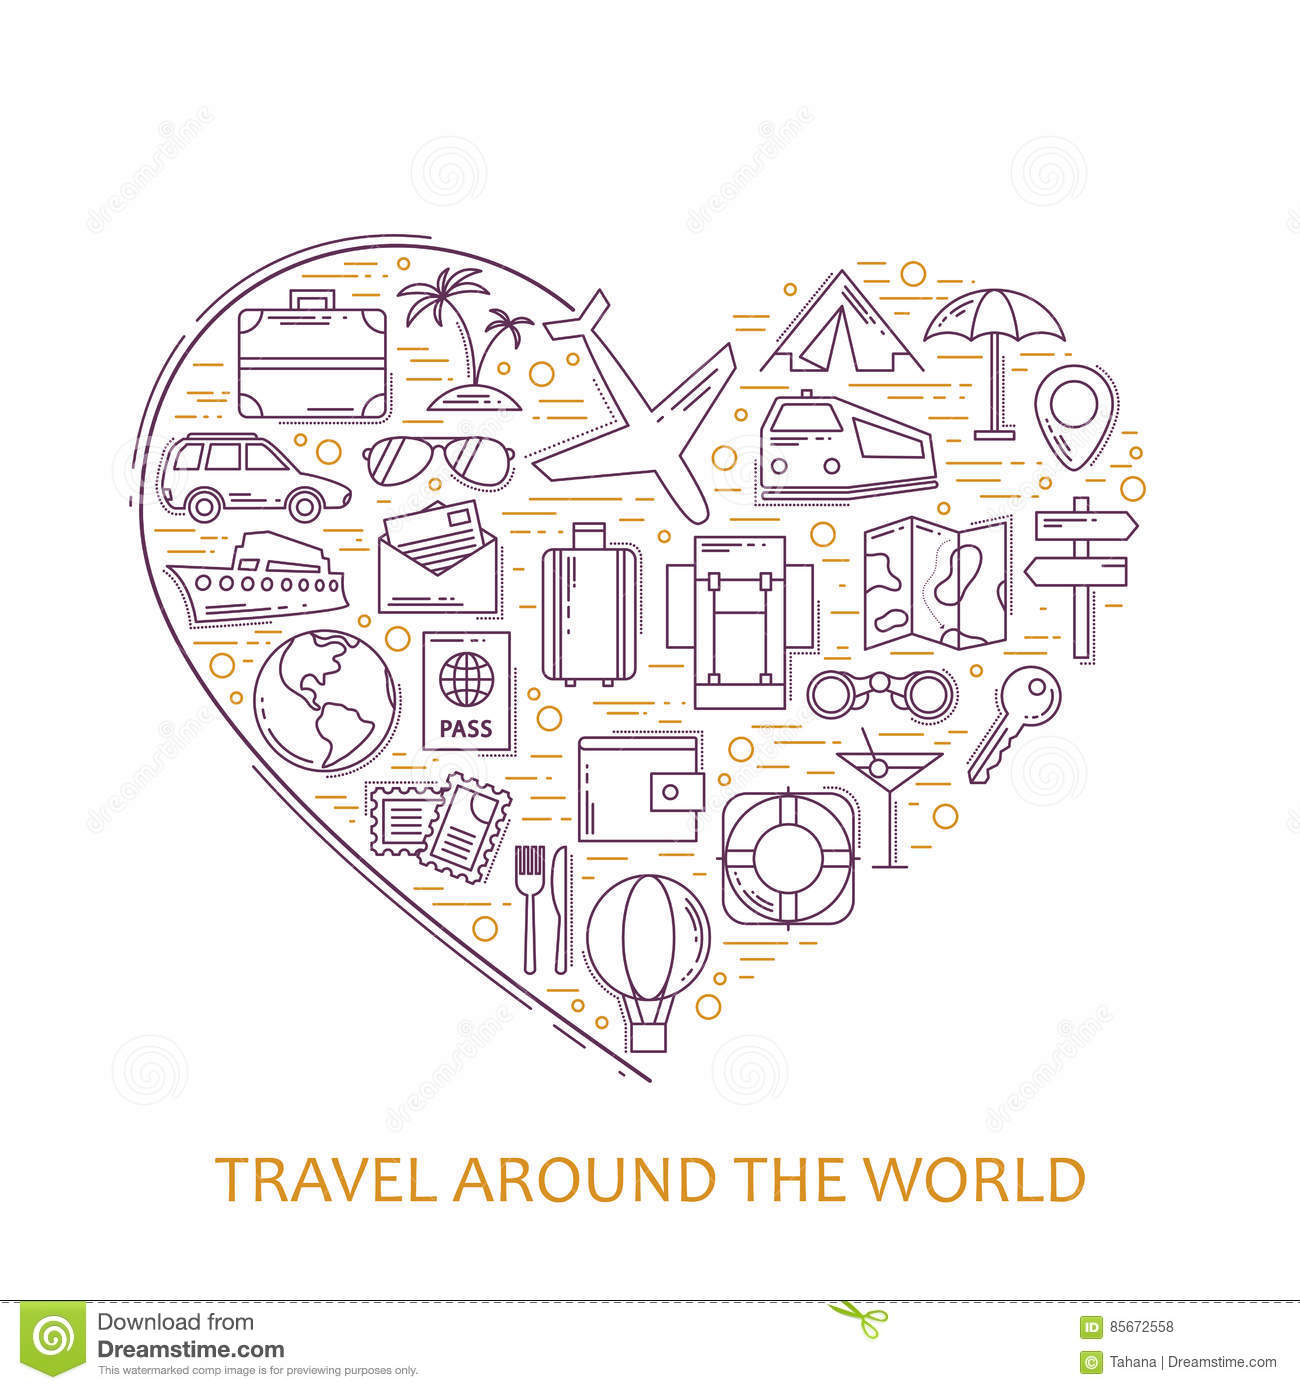 Travel line icons in heart shape. I love travel - vector illustration concept for cover card, brochure or magazine